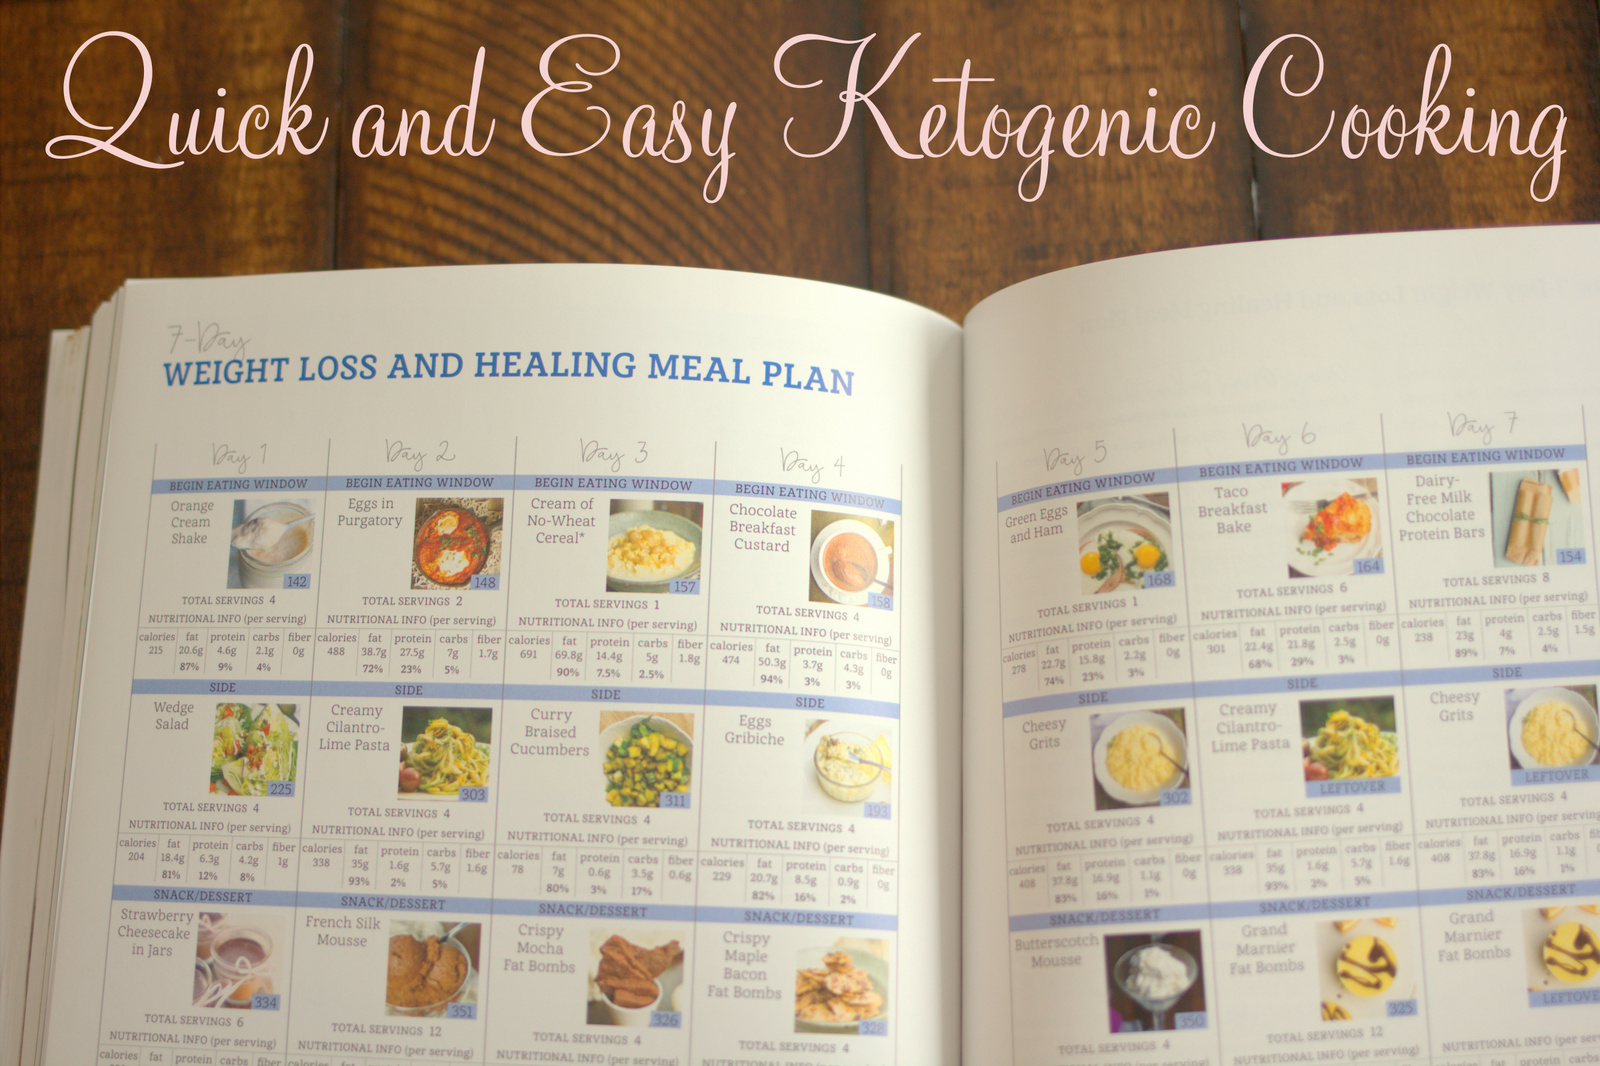 Quick and Easy Ketogenic Cooking